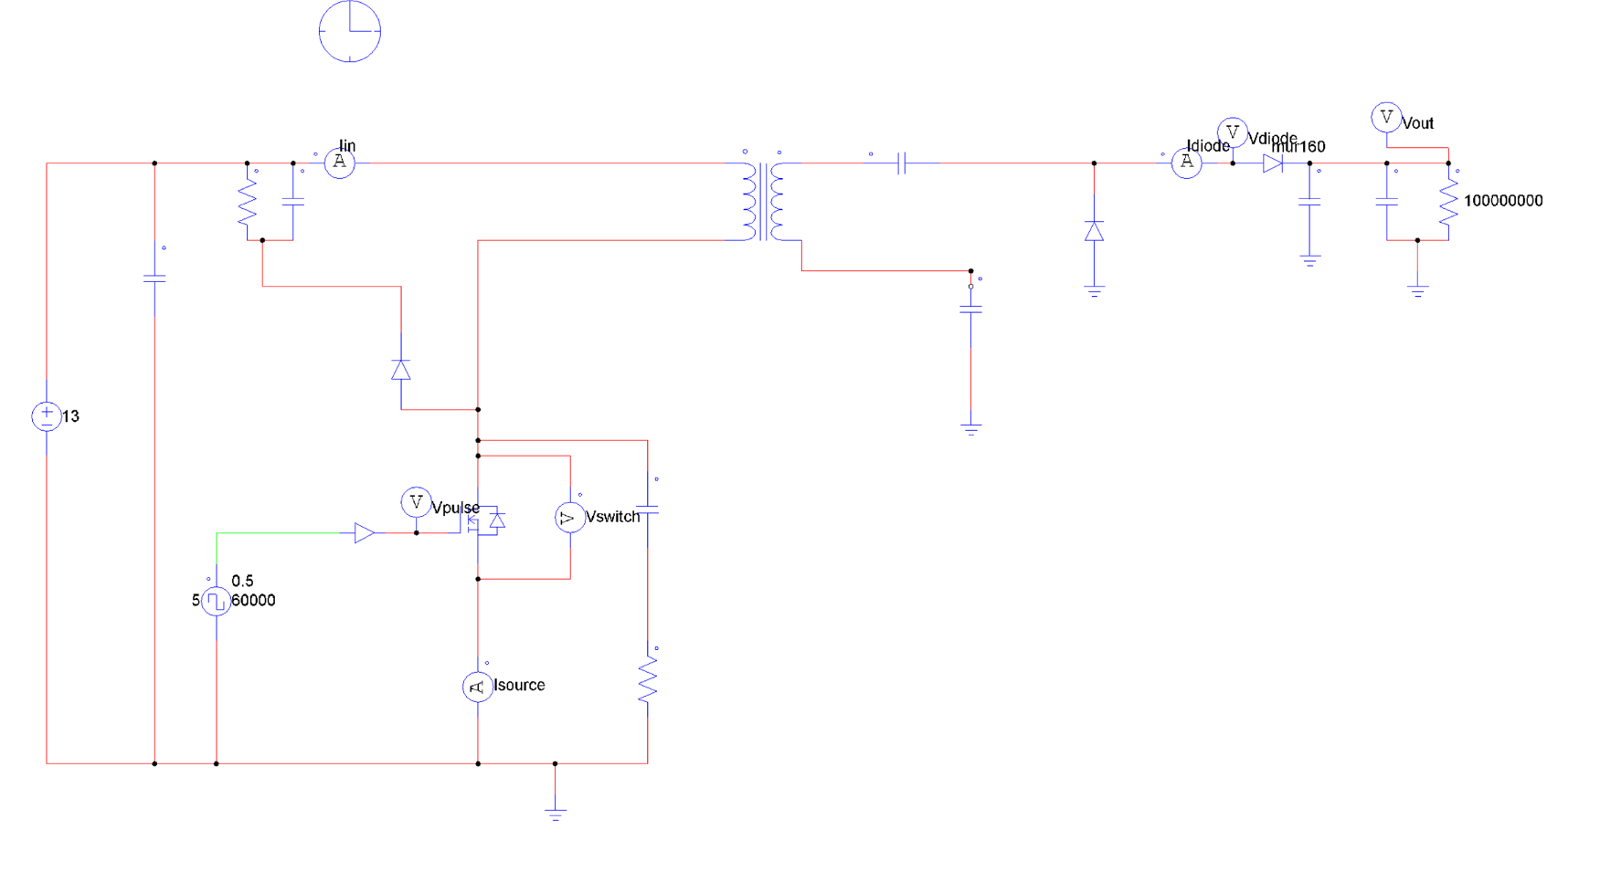 Dc Controller With Output Of 500 V Qa Power By Linear Capacitors Inductors And Transformers In Electronic Circuits Analog I Changed Slightly The Circuit For Can Use Ceramic As Plan To Vacuum Modified Is Below